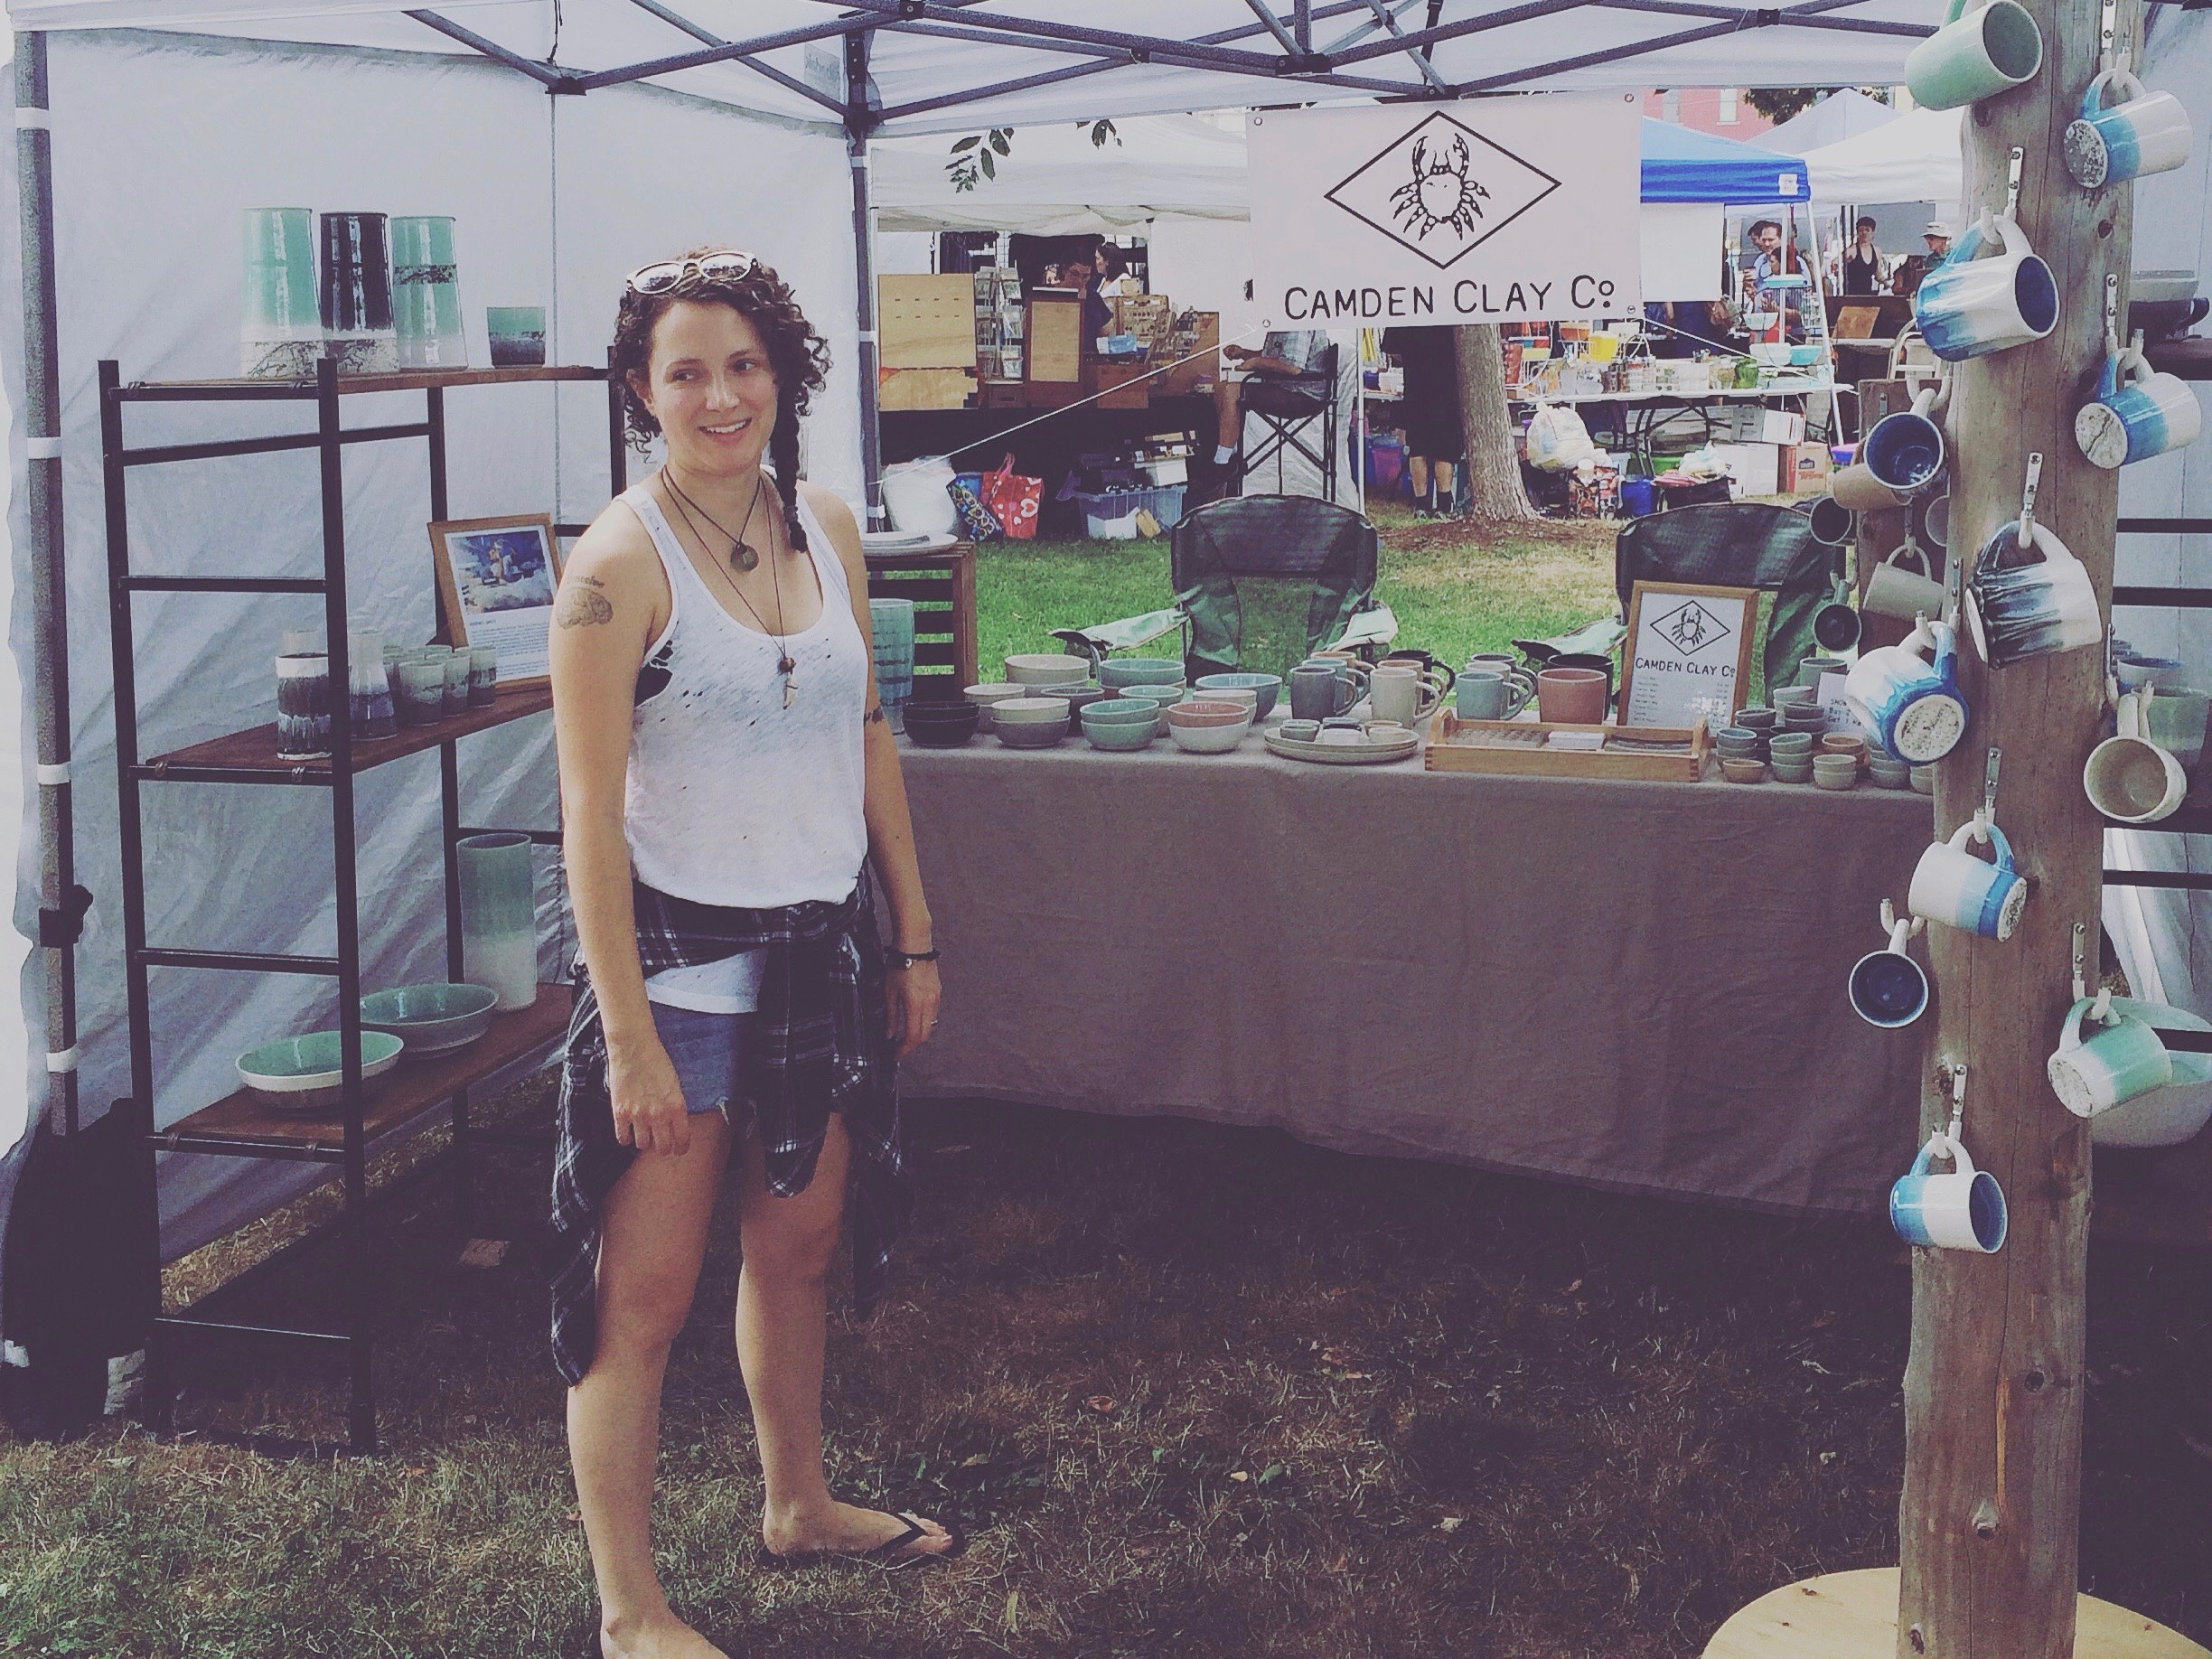 Jess Smith, designer and marketing director, at a craft show.